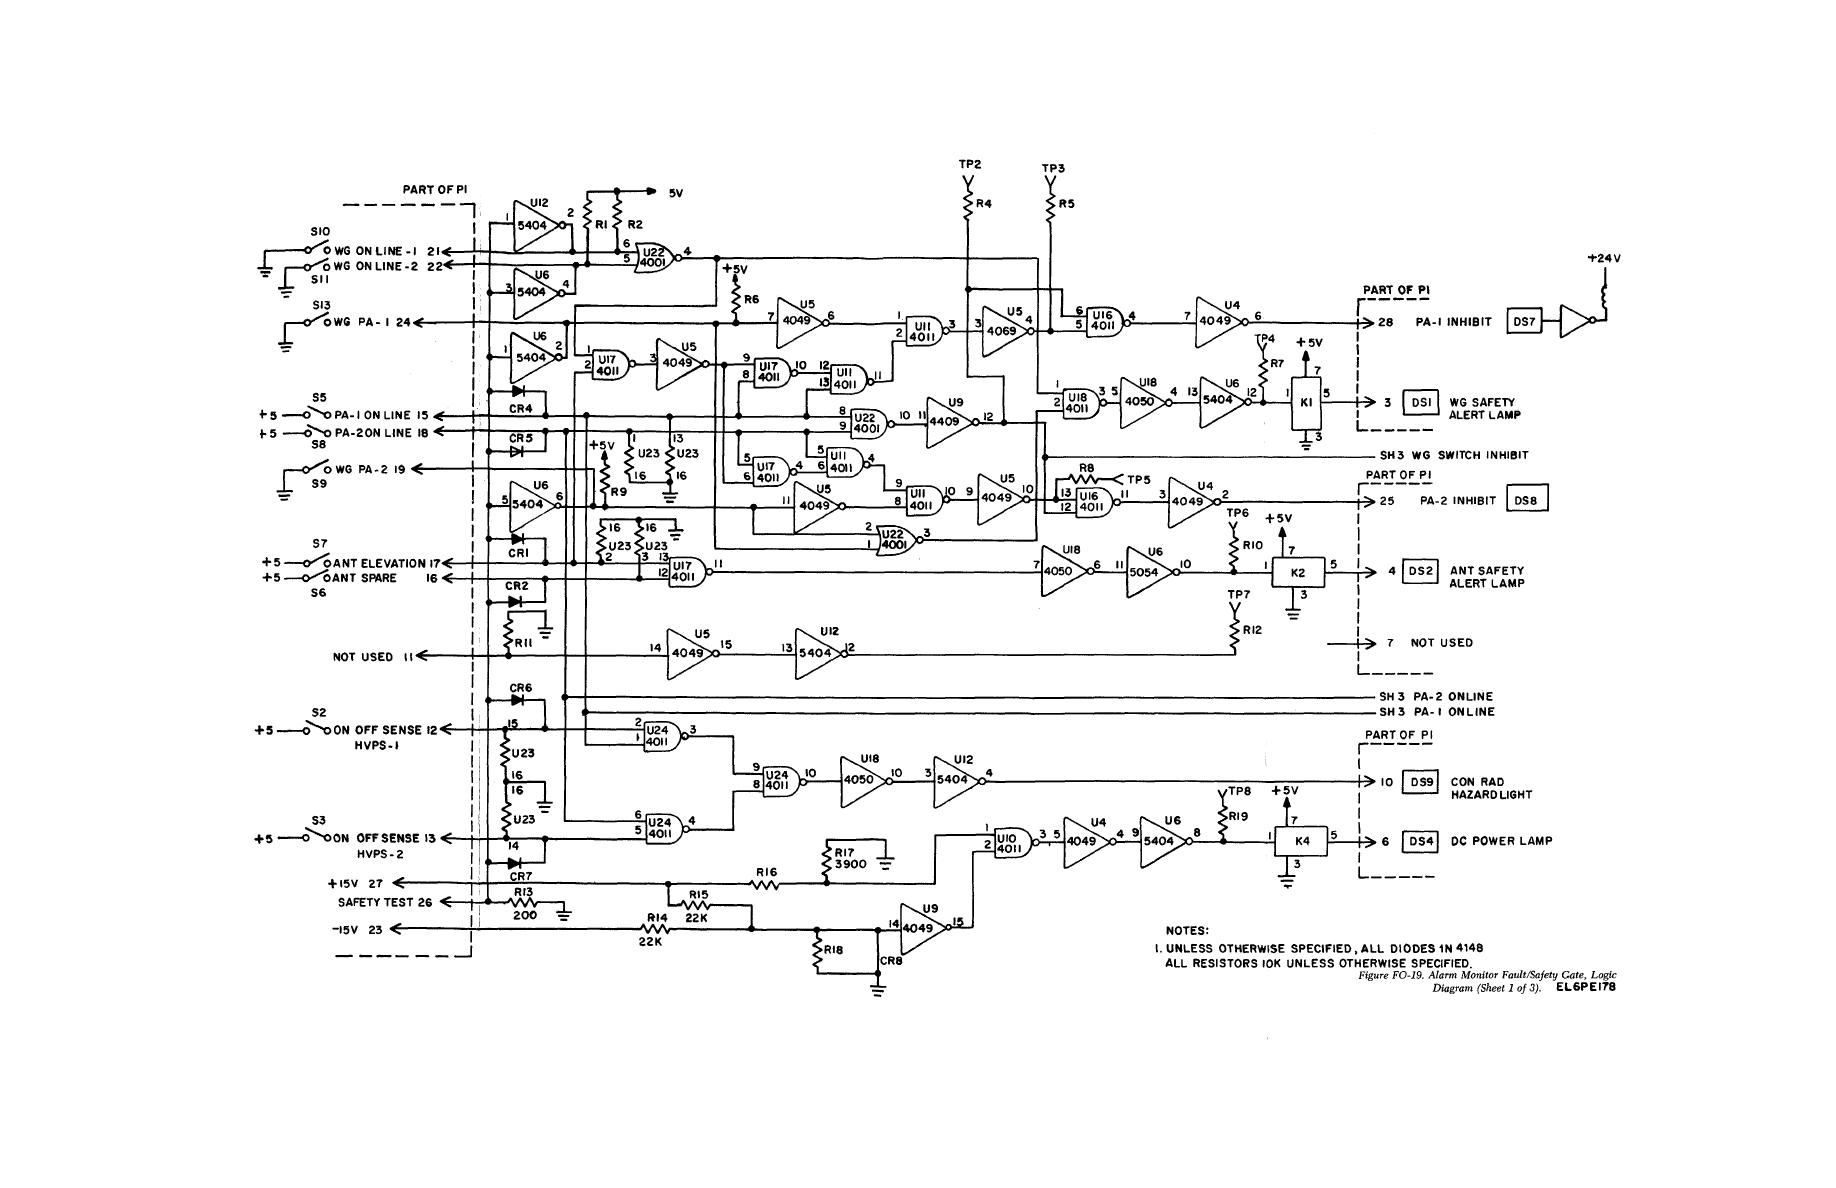 Logic Diagram Of And Gate Manual Wiring Xnor Xor Html Test Elsavadorla Not